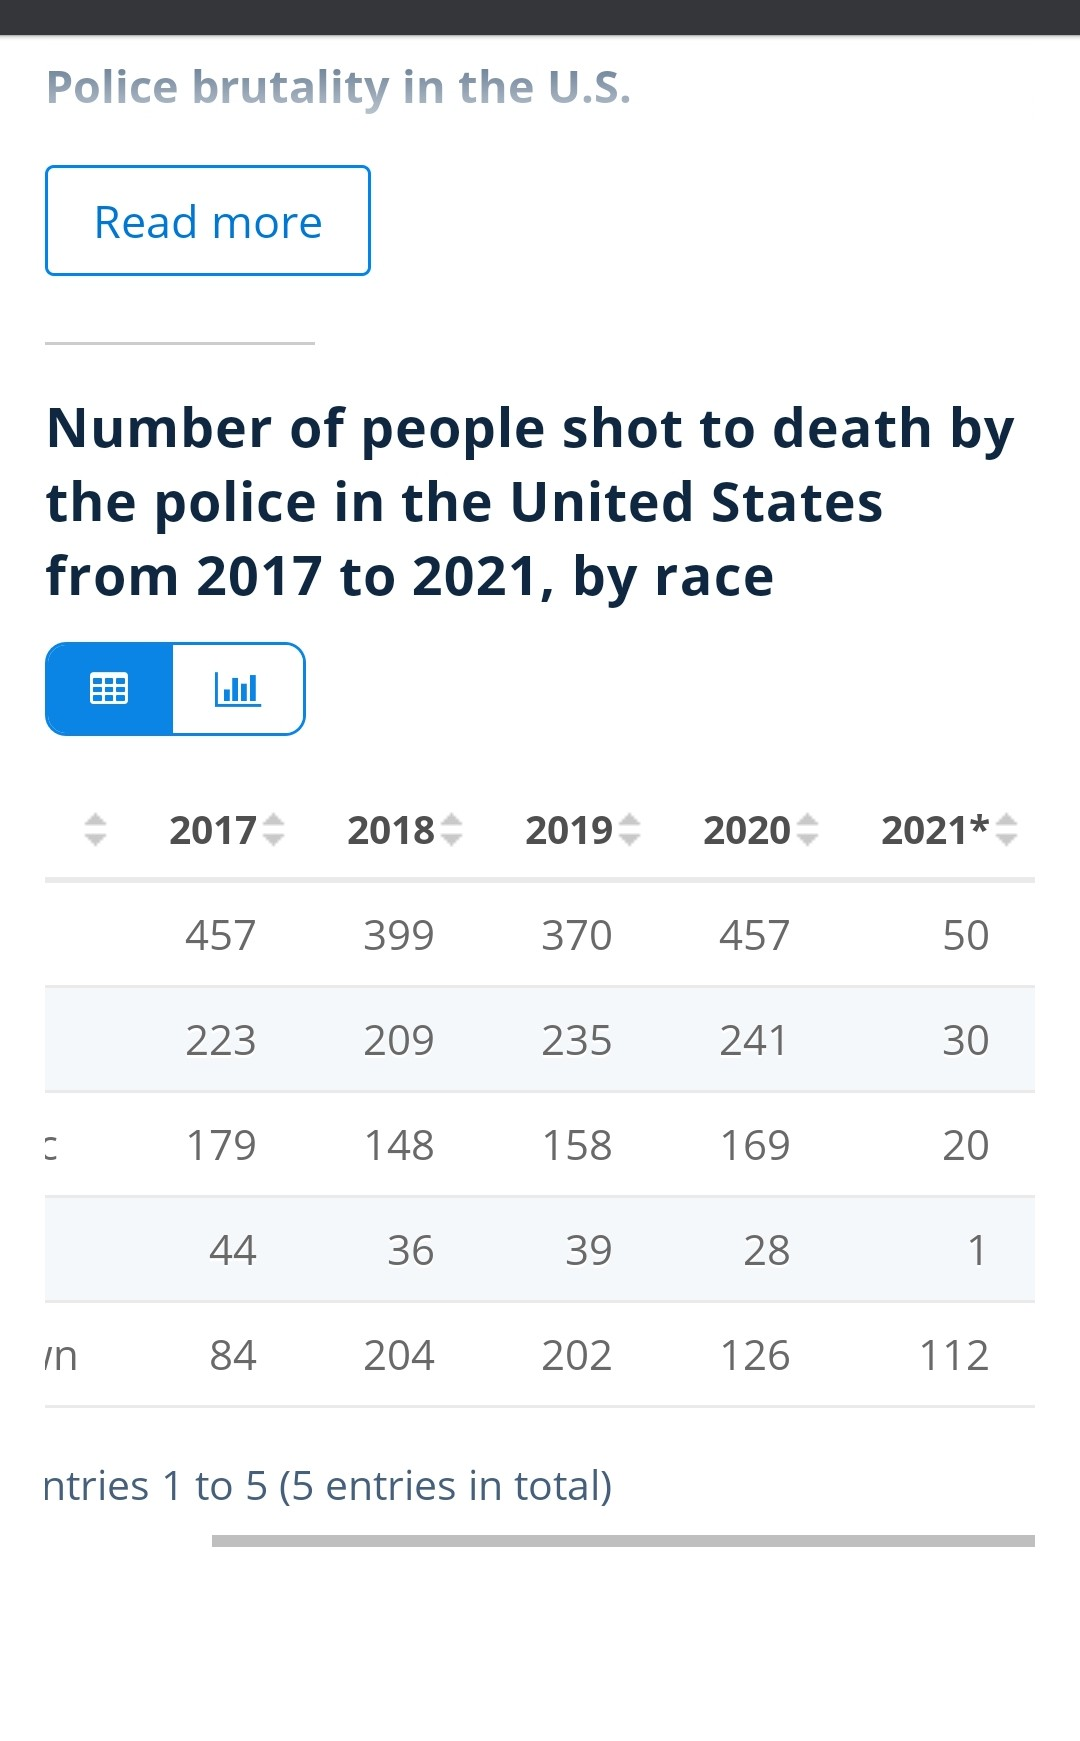 Number of people killed by Police